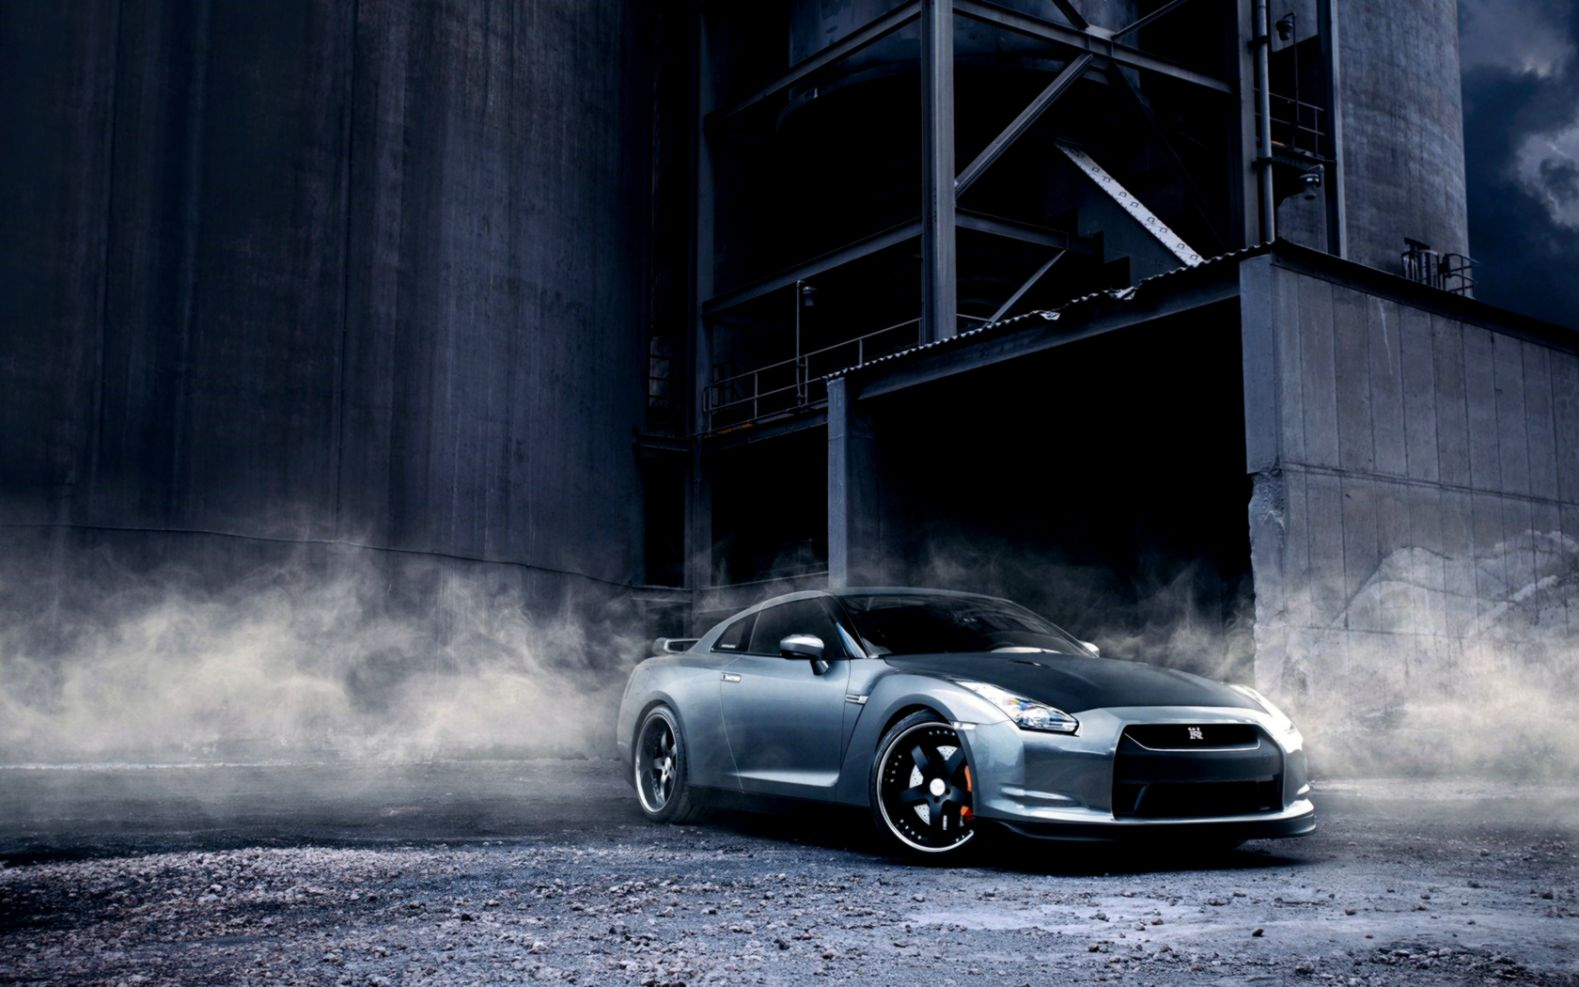 Nissan Gt R R35 Smoke Warehouse Hd Wallpaper Wallpapers Latest